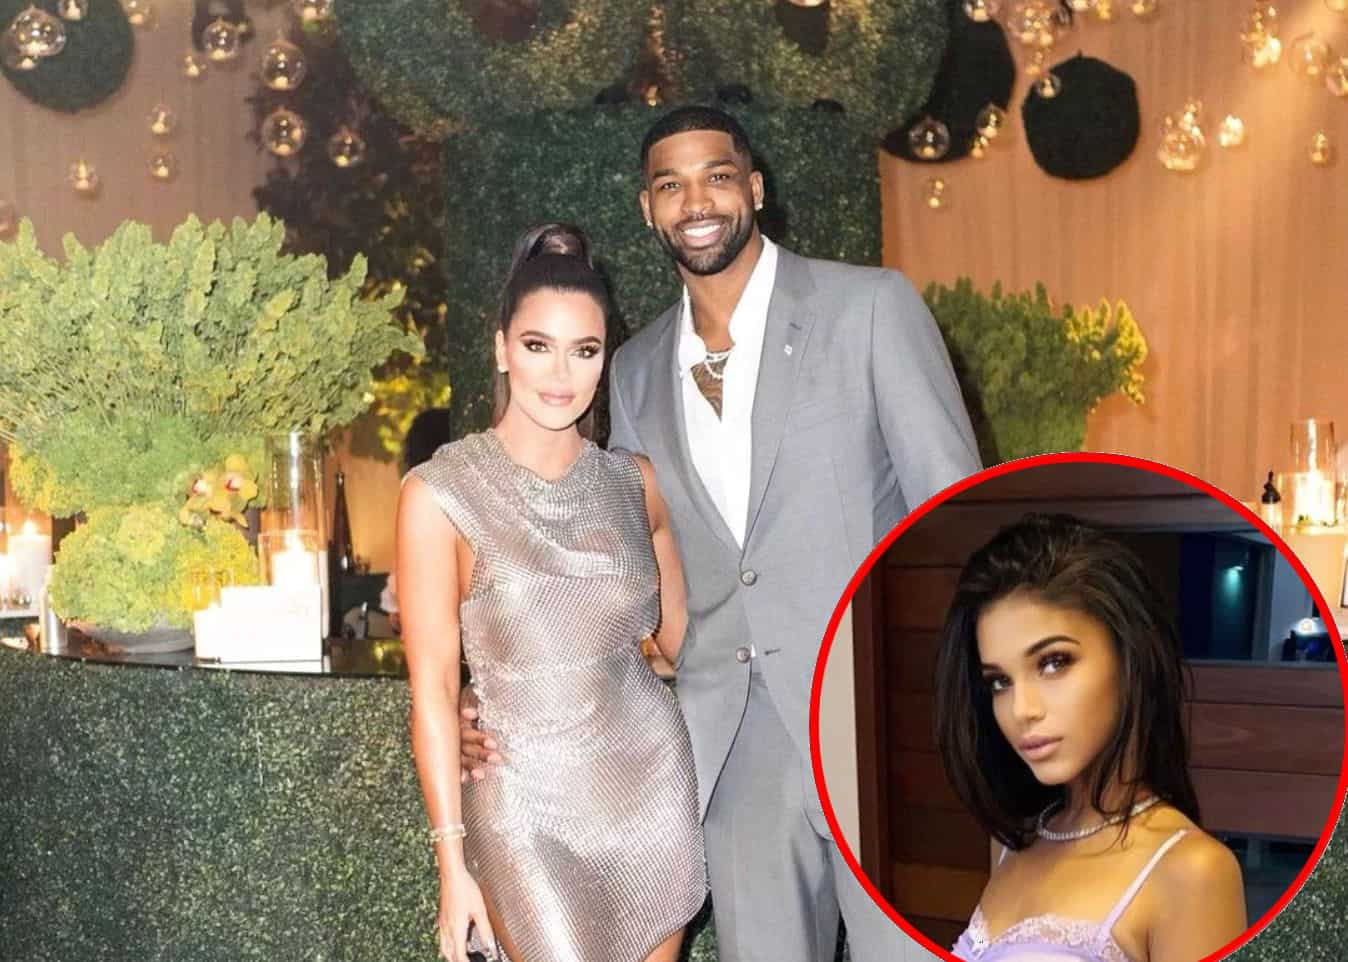 """Tristan Thompson Accused of Cheating on Khloe Kardashian This Year as Model Sydney Chase Comes Forward With Explicit Details About Alleged """"Multiple"""" Encounters and Claims He Told Her He Was """"Single"""""""